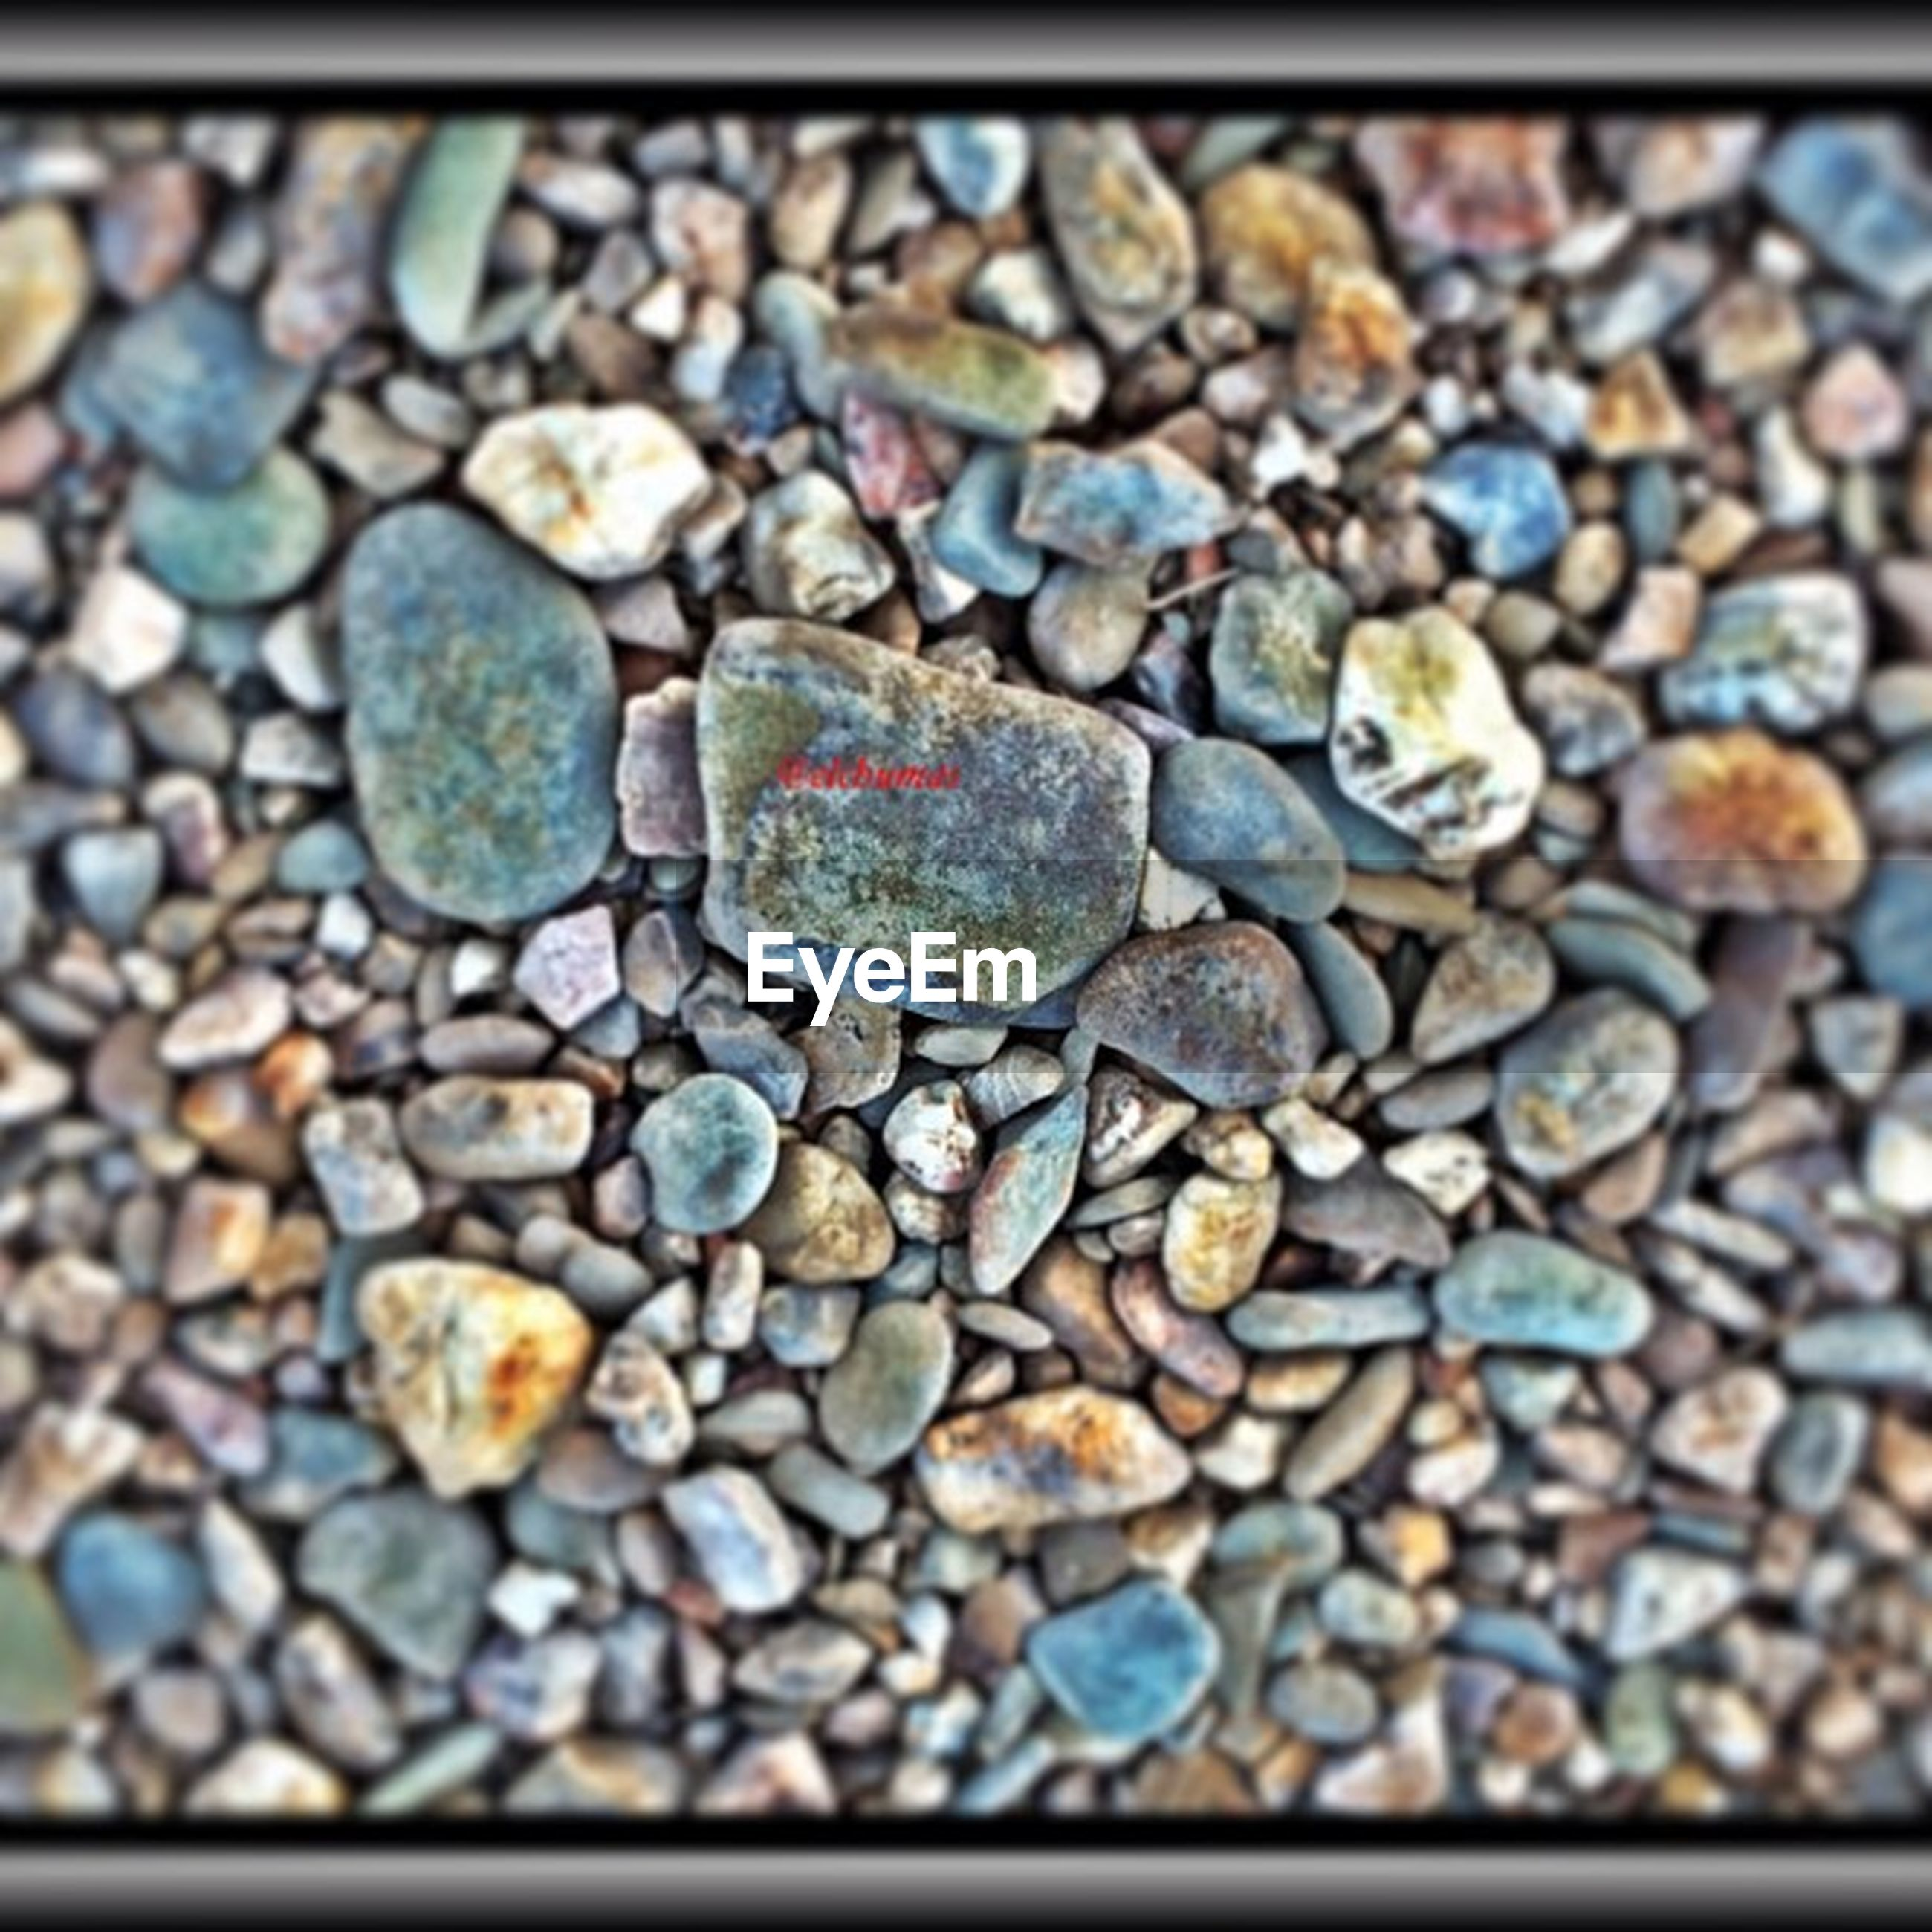 pebble, abundance, large group of objects, full frame, backgrounds, stone - object, transfer print, close-up, selective focus, auto post production filter, textured, high angle view, surface level, no people, day, outdoors, still life, stone, heap, nature